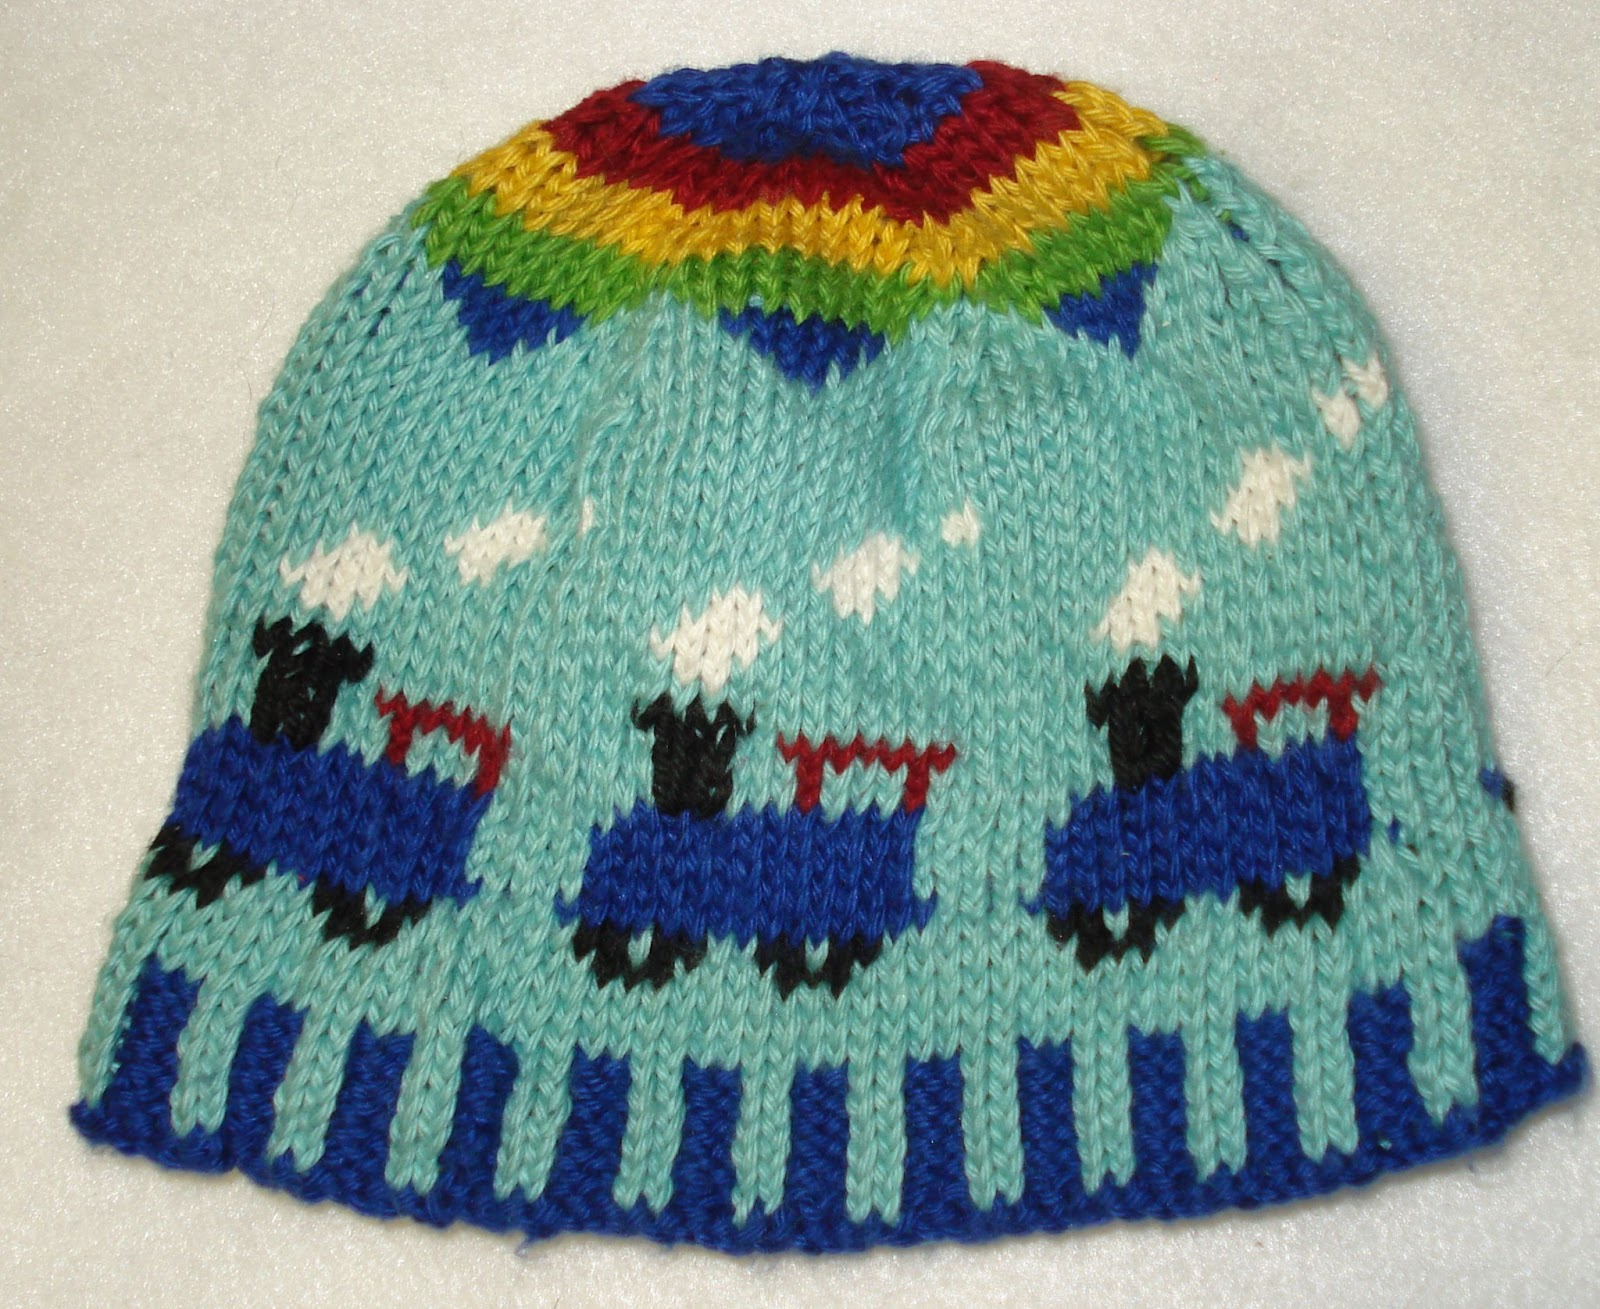 Train Knitting Pattern : Mix Me Up!: The train hat (finally)